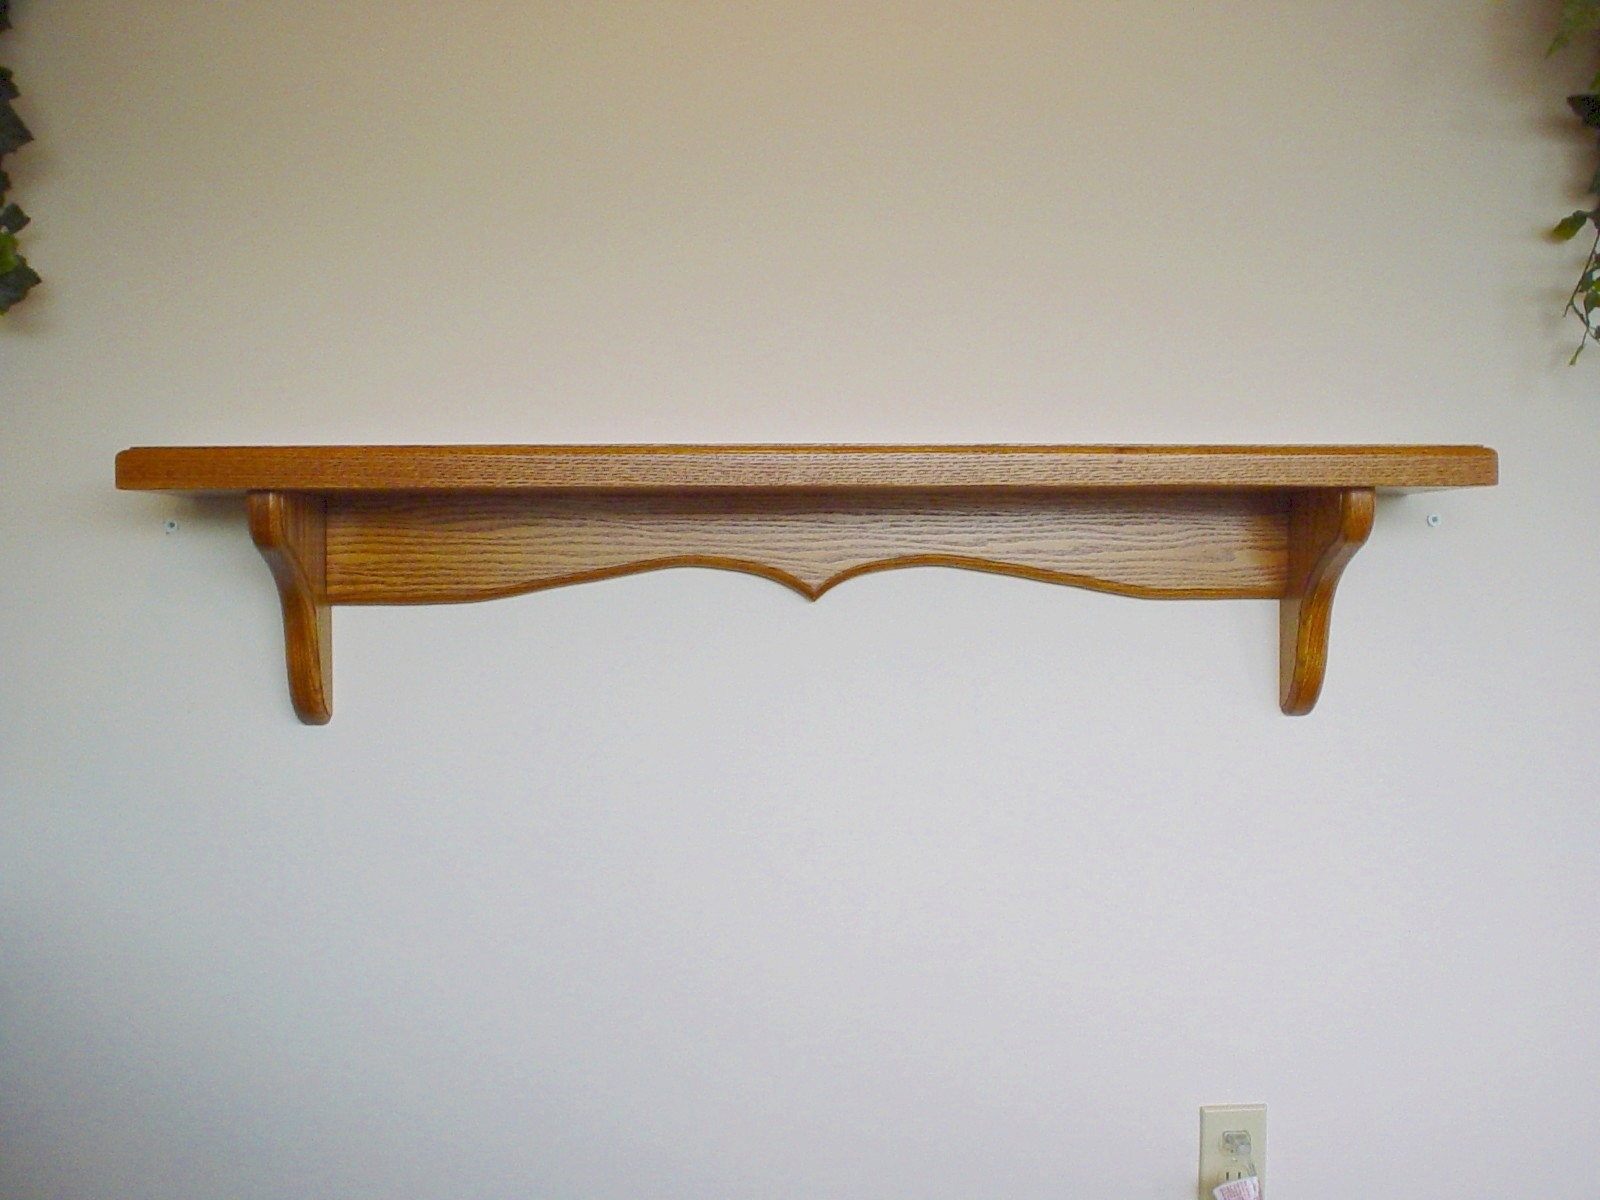 Wall Shelf Brackets Are Perfect Options Why Home Decorations Intended For Wall Shelf (View 8 of 12)